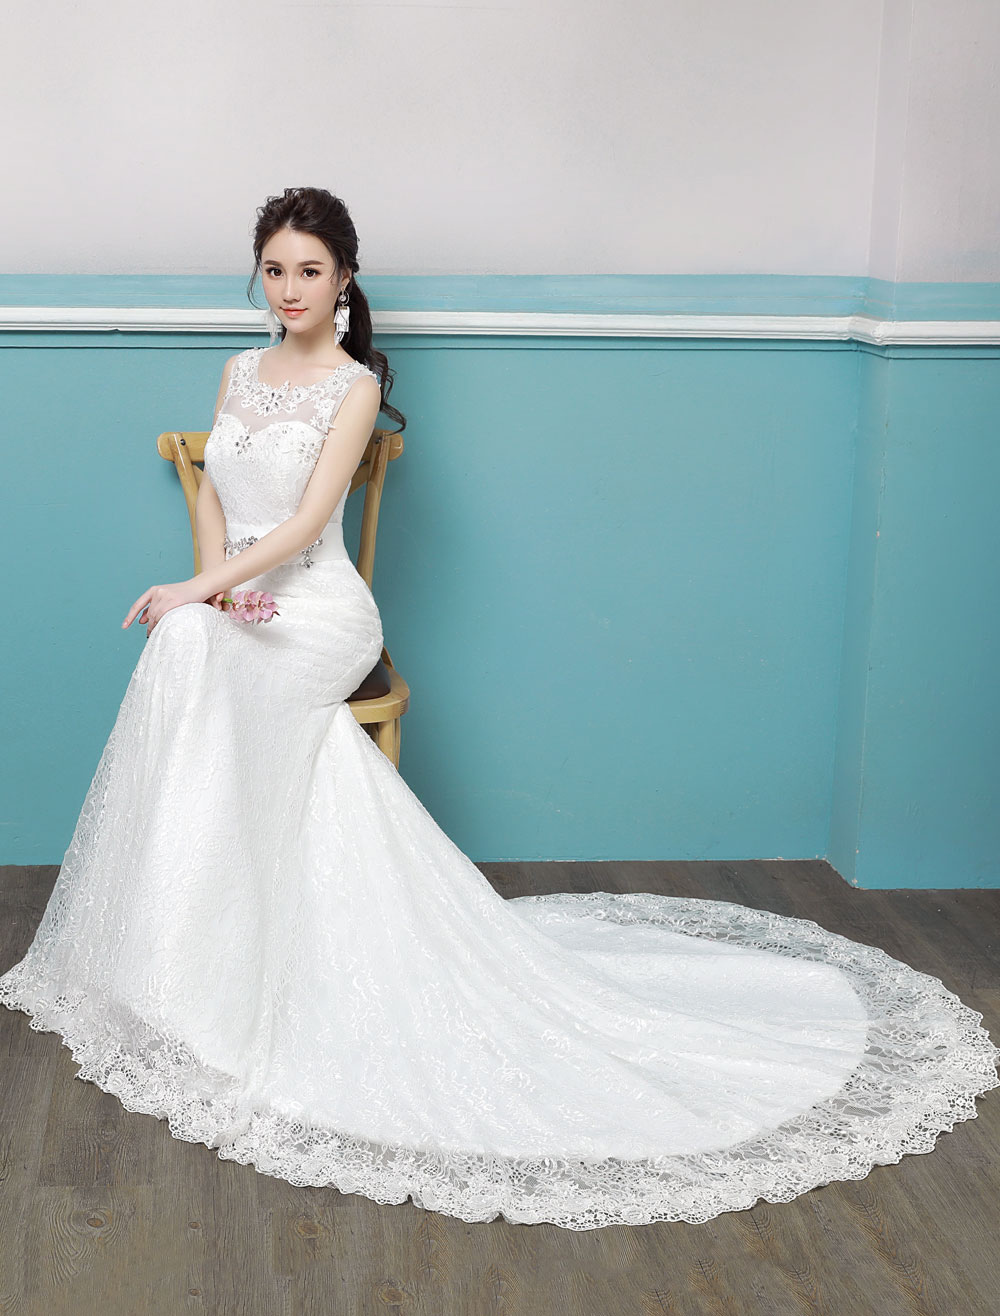 Mermaid Wedding Dresses Lace Beading Keyhole Sash Sleeveless Bridal ...